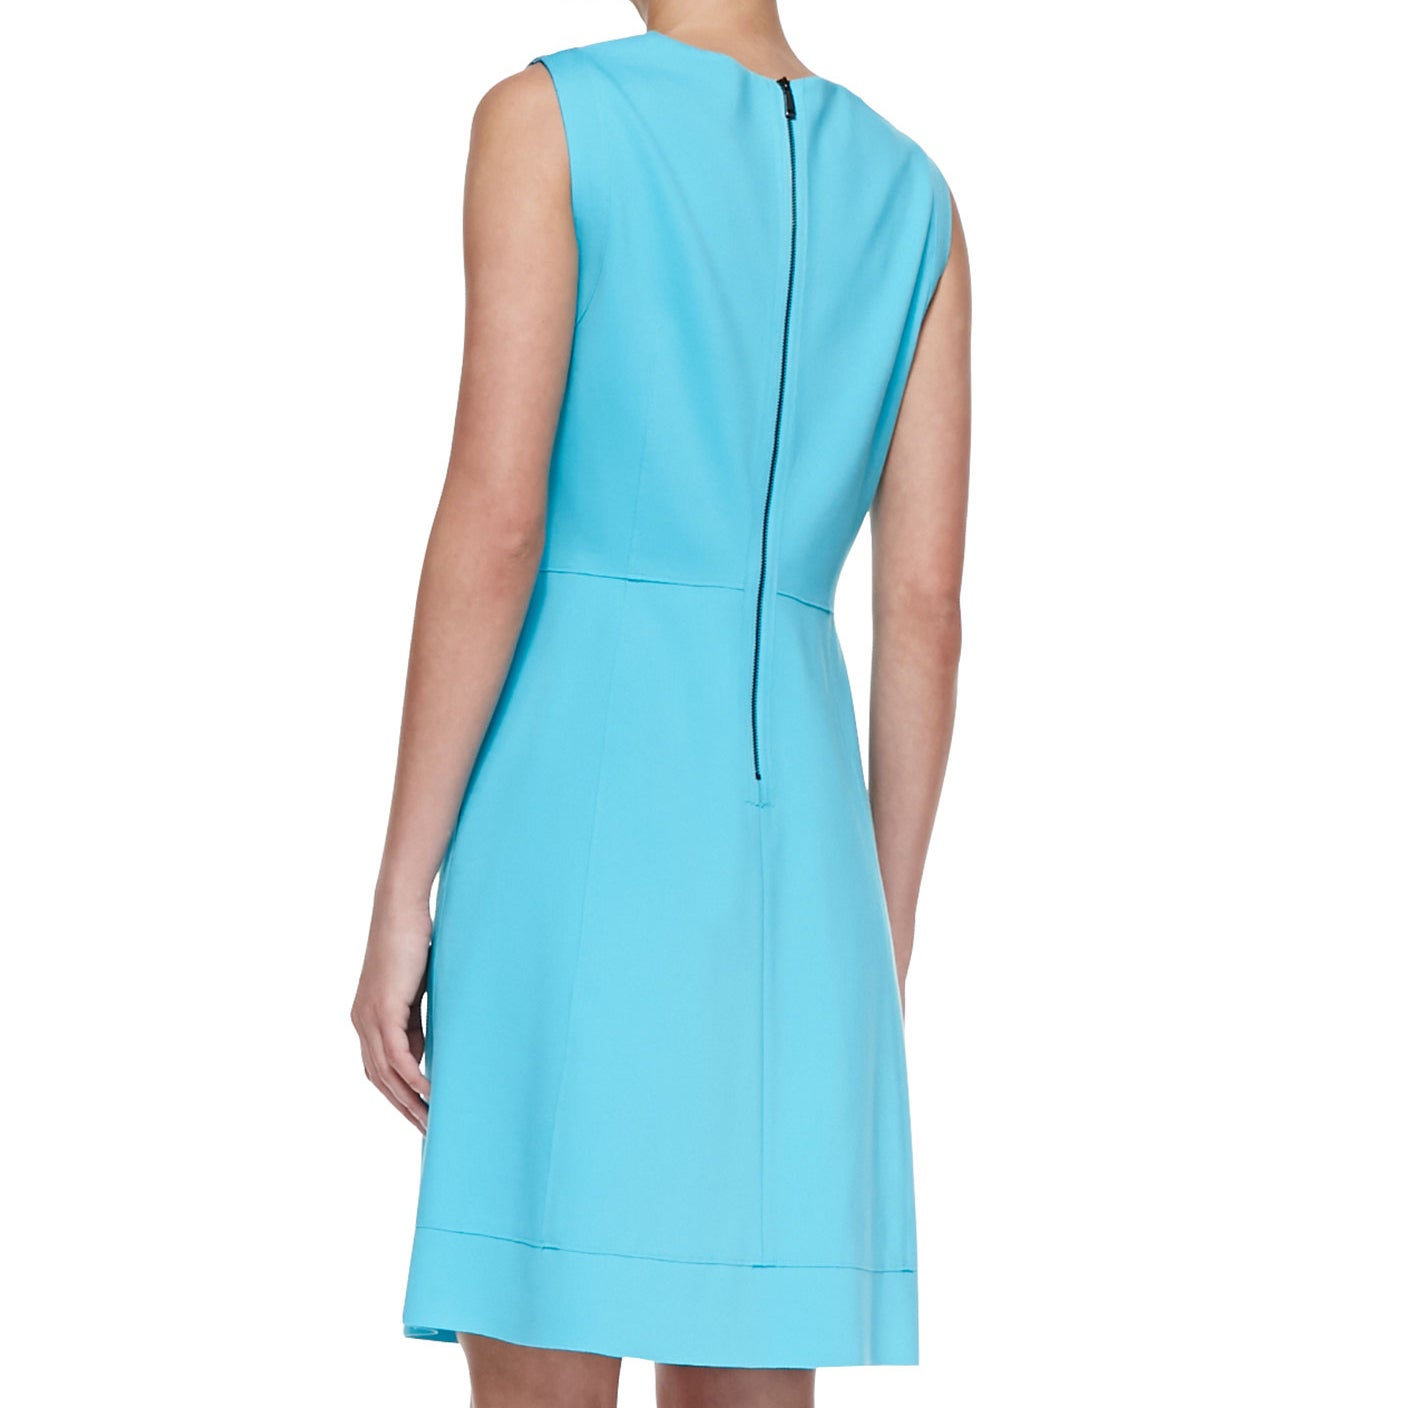 6be15b297b0449 Shop Elie Tahari Callie Ocean Blue Flared Dress - Free Shipping Today -  Overstock - 11600688